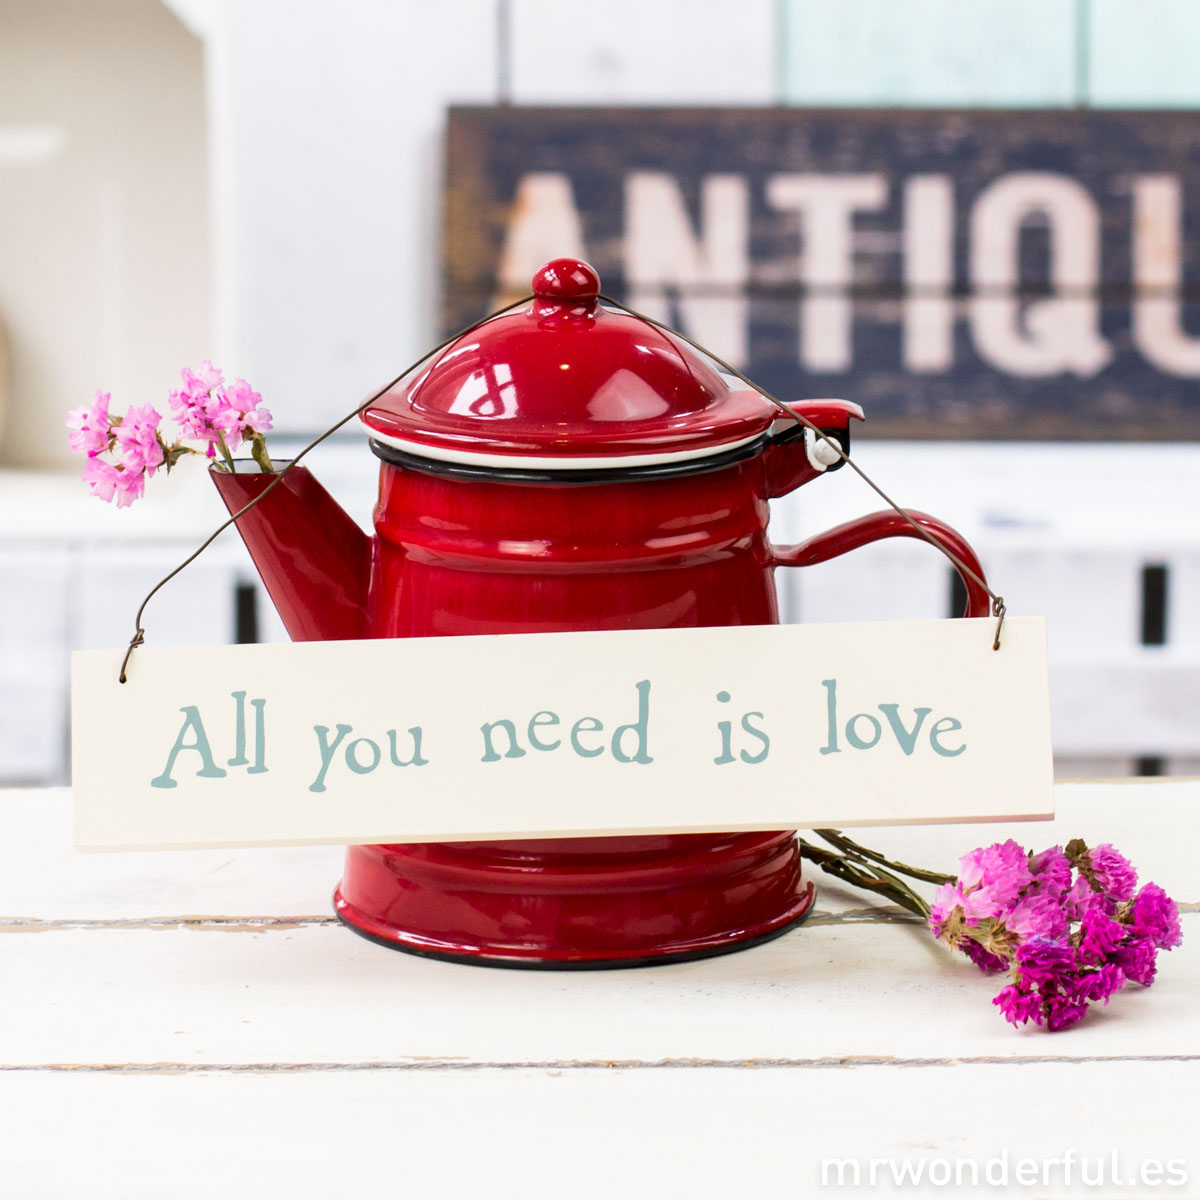 mrwonderful_867_cartel-madera-lavada_all-you-need-love-7-2